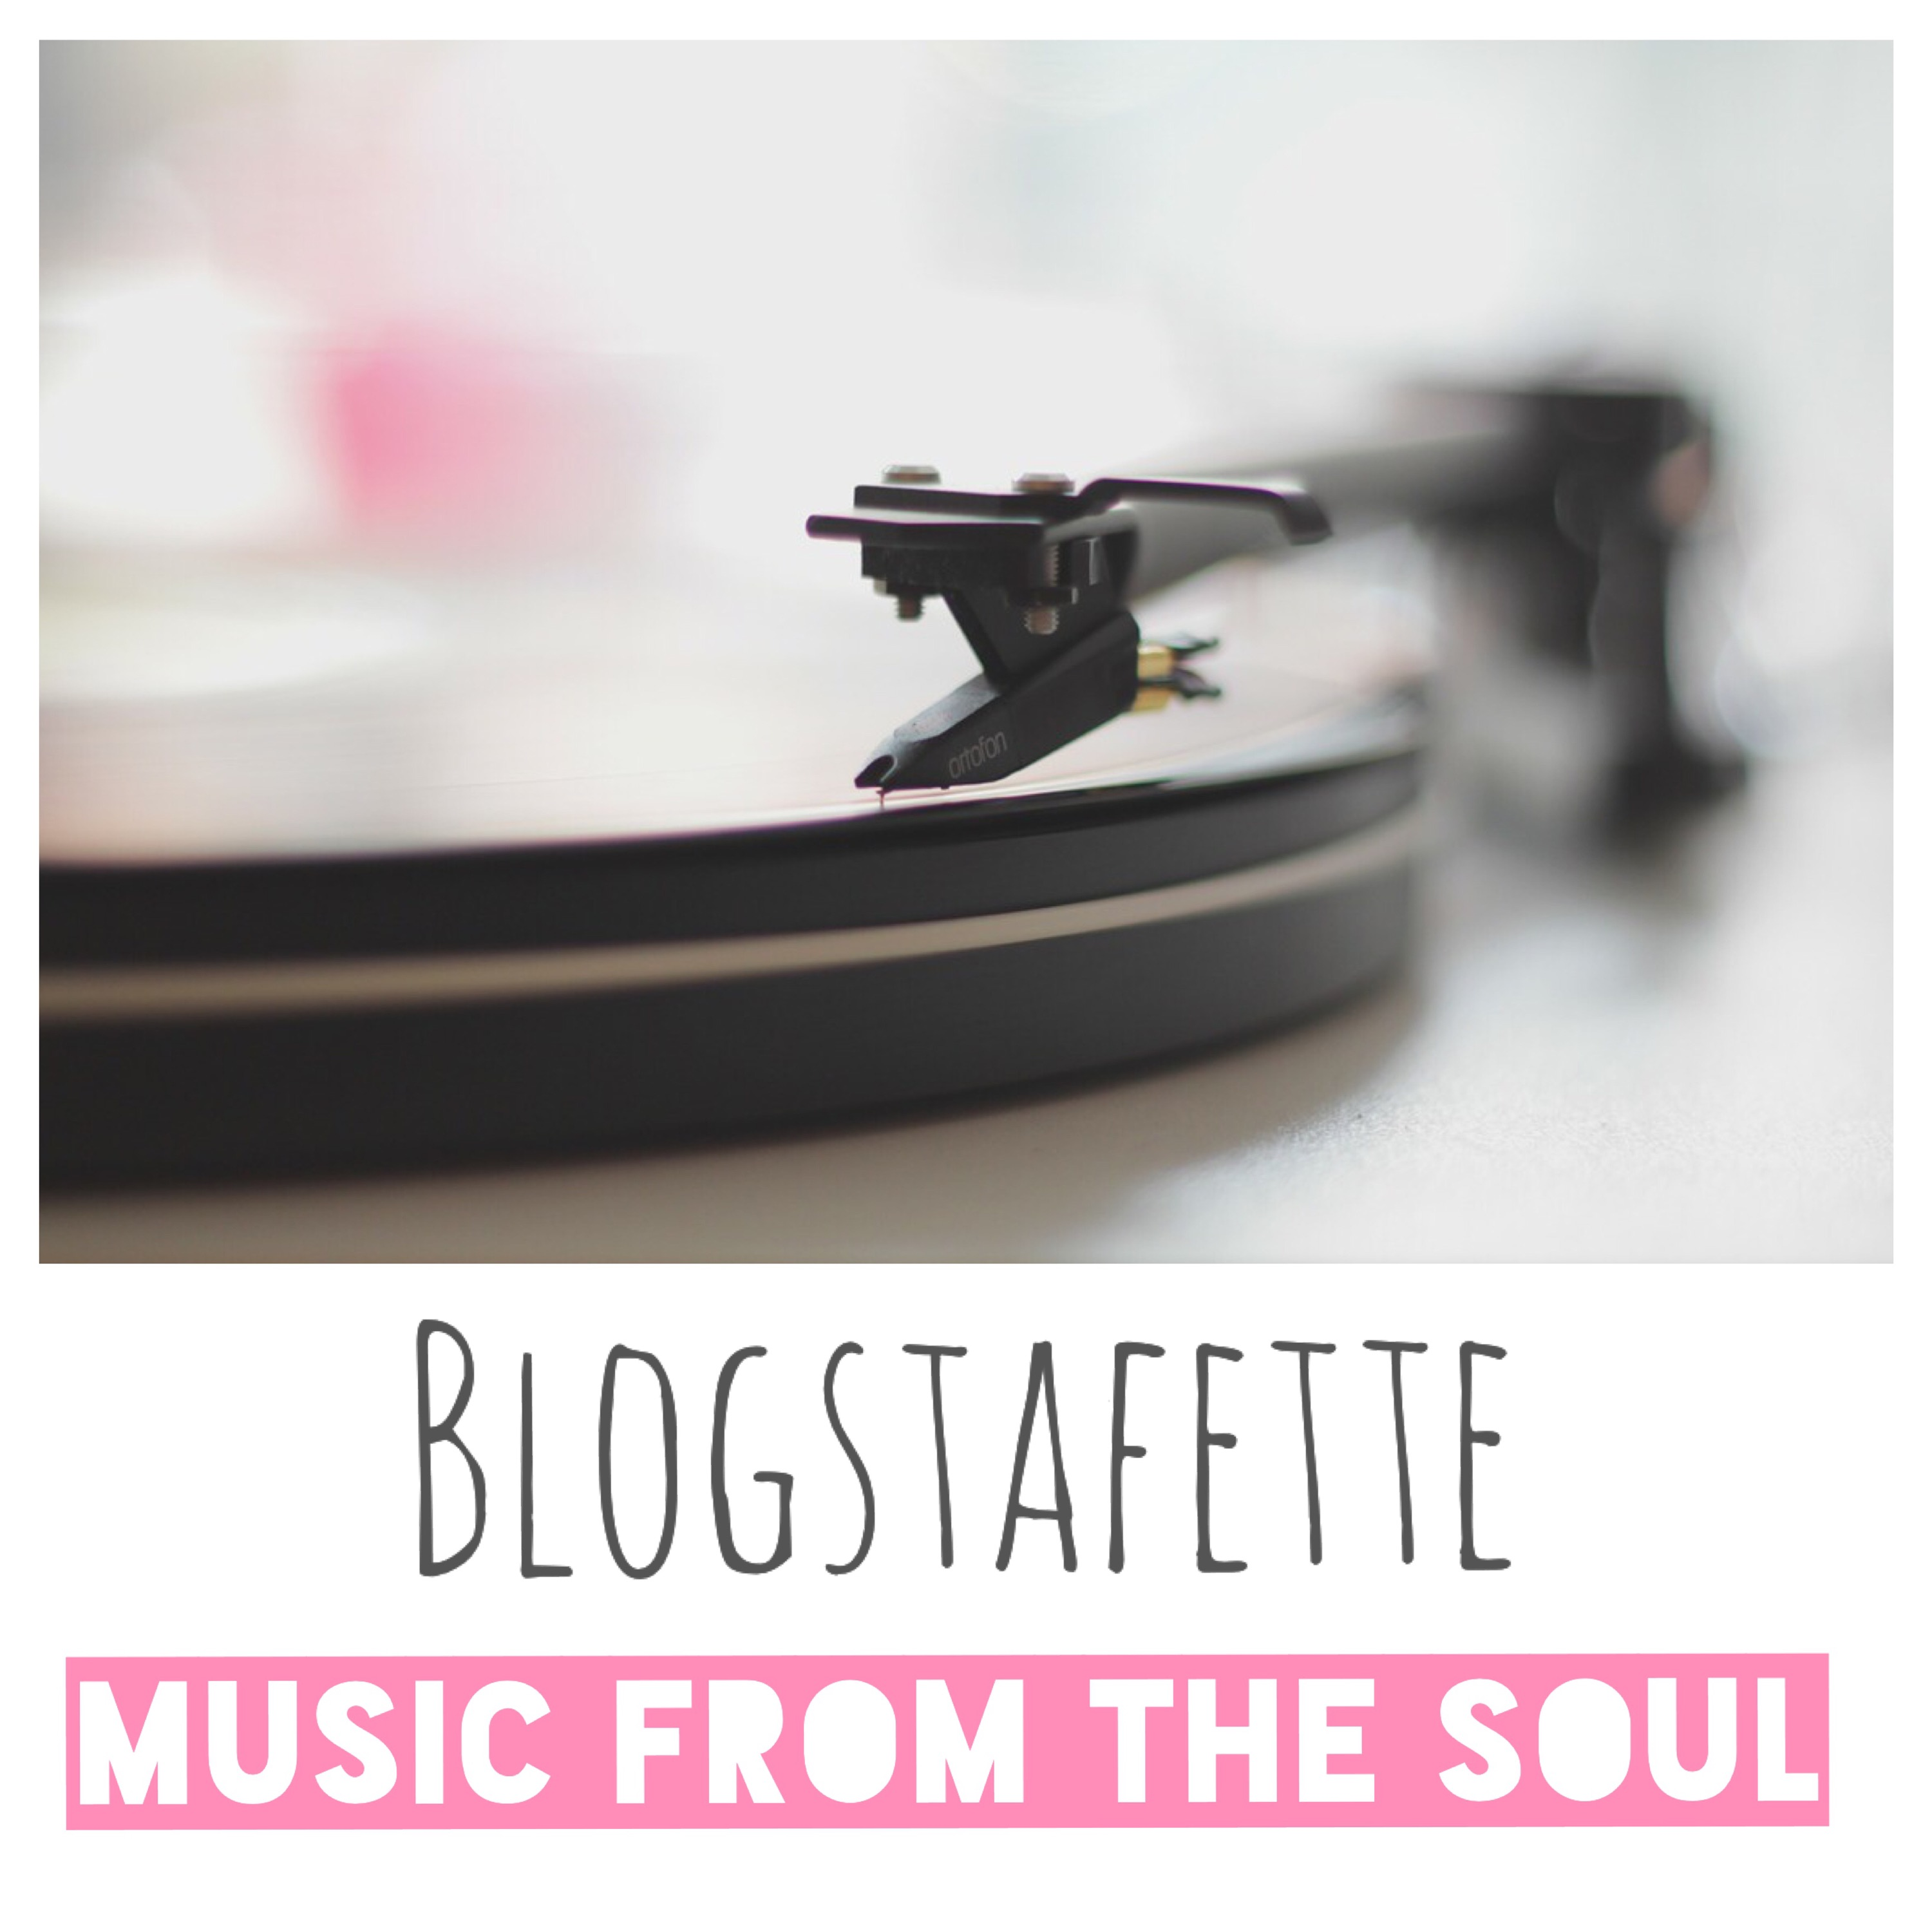 Blogstafette Music for the soul